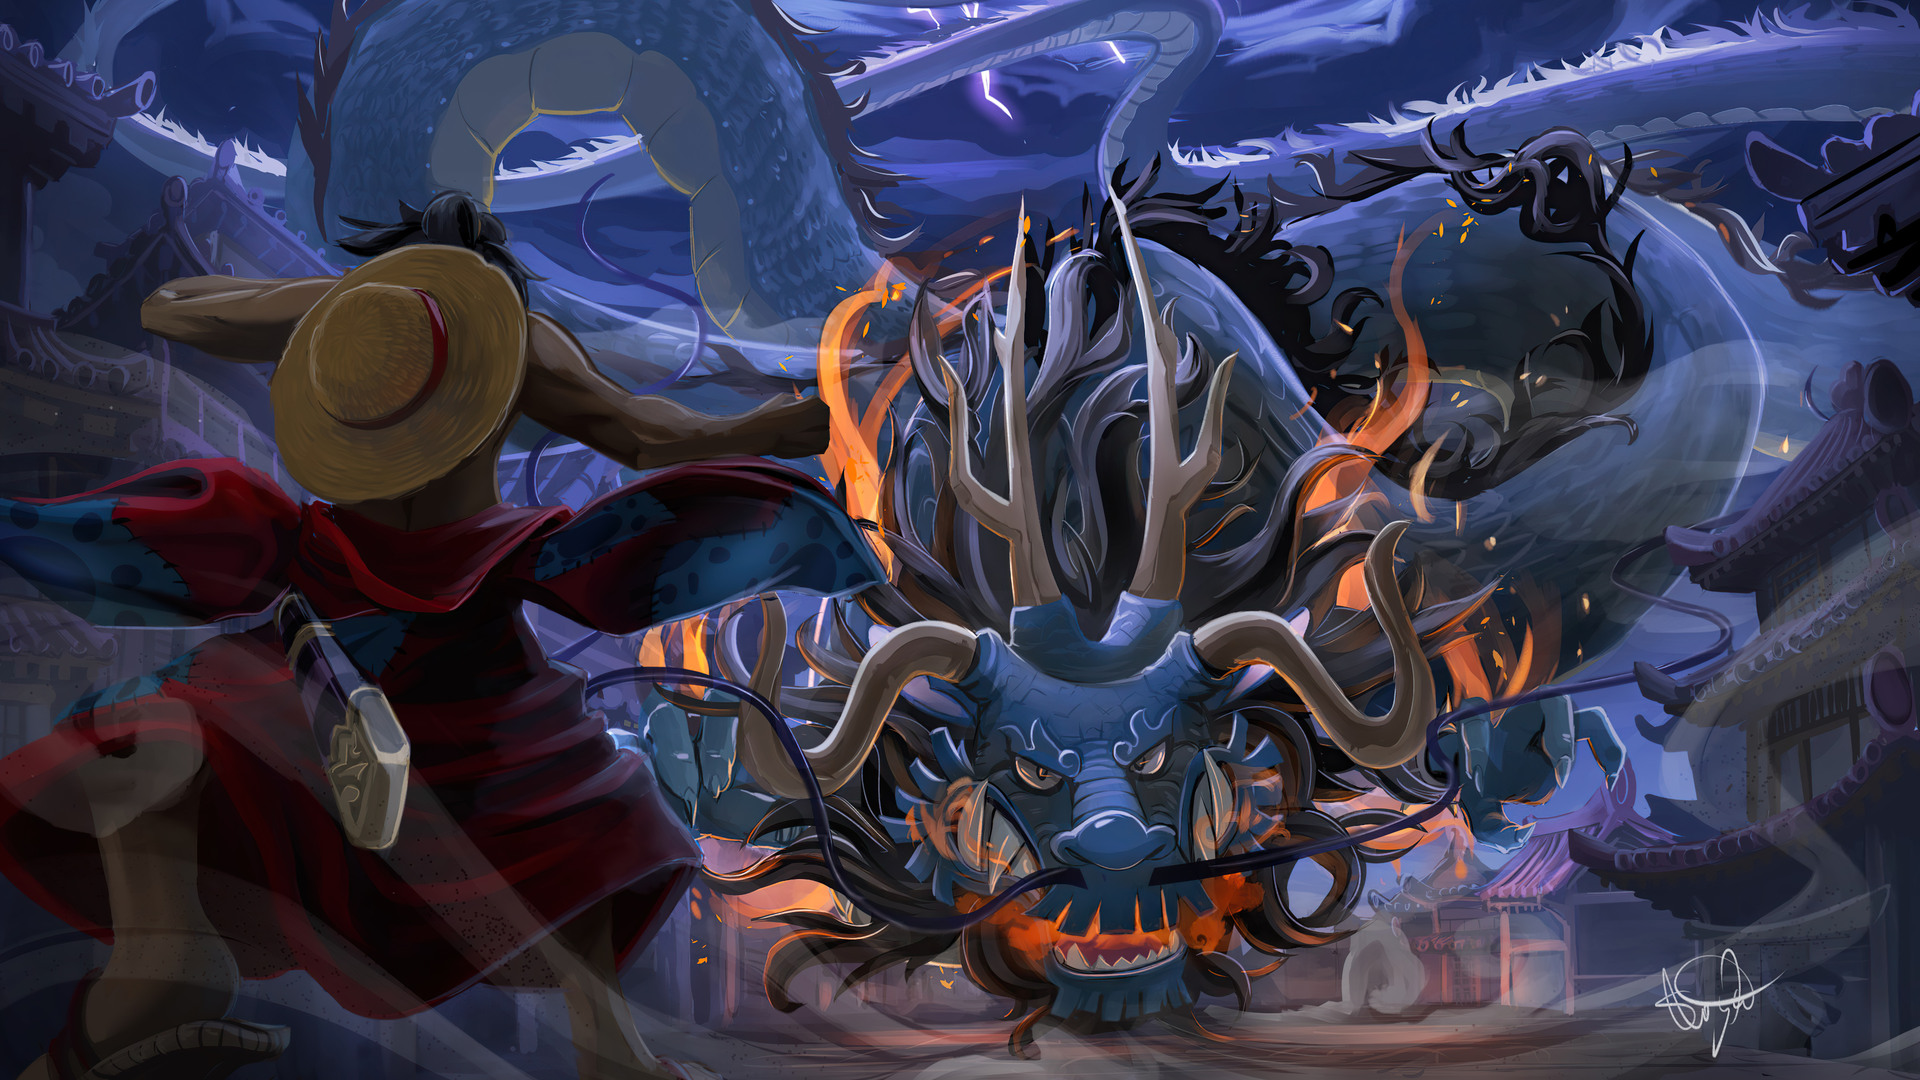 16/12/2020· don't forget to bookmark wallpaper one piece luffy 4k using ctrl + d (pc) or command + d (macos). Luffy Vs Kaido Dragon Form One Piece 4k Wallpaper 6 788